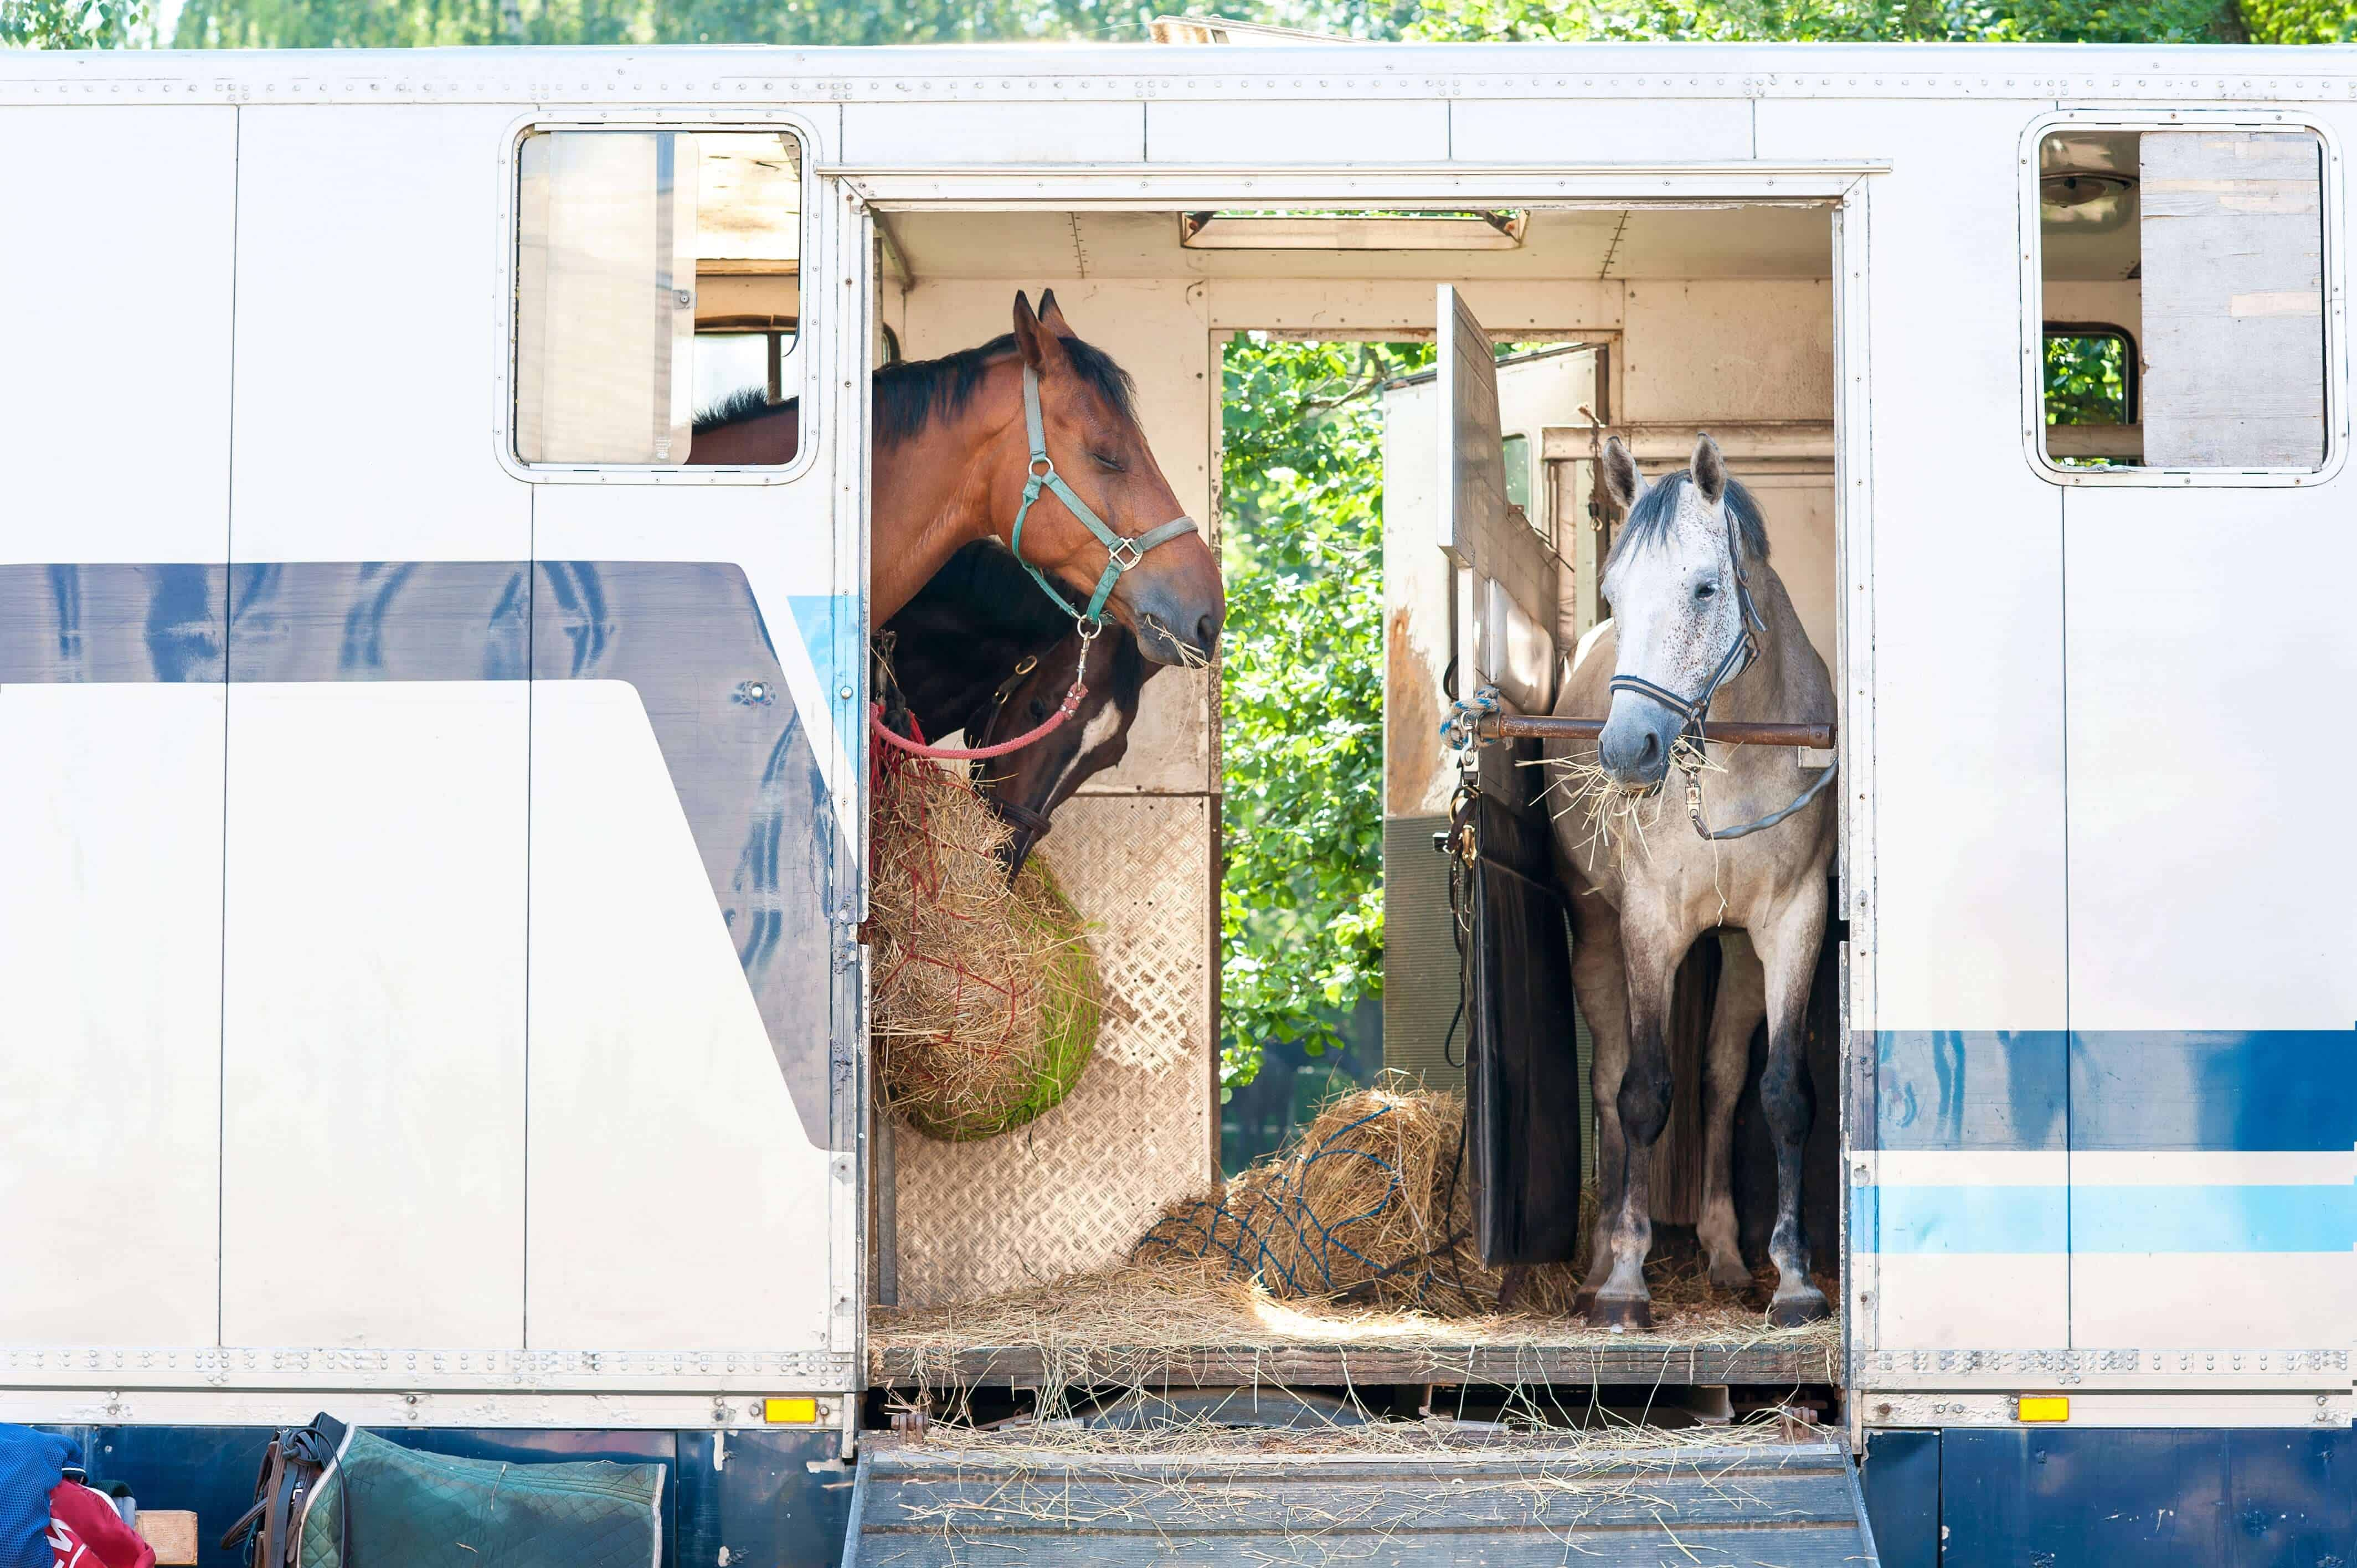 Horses eating inside trailer